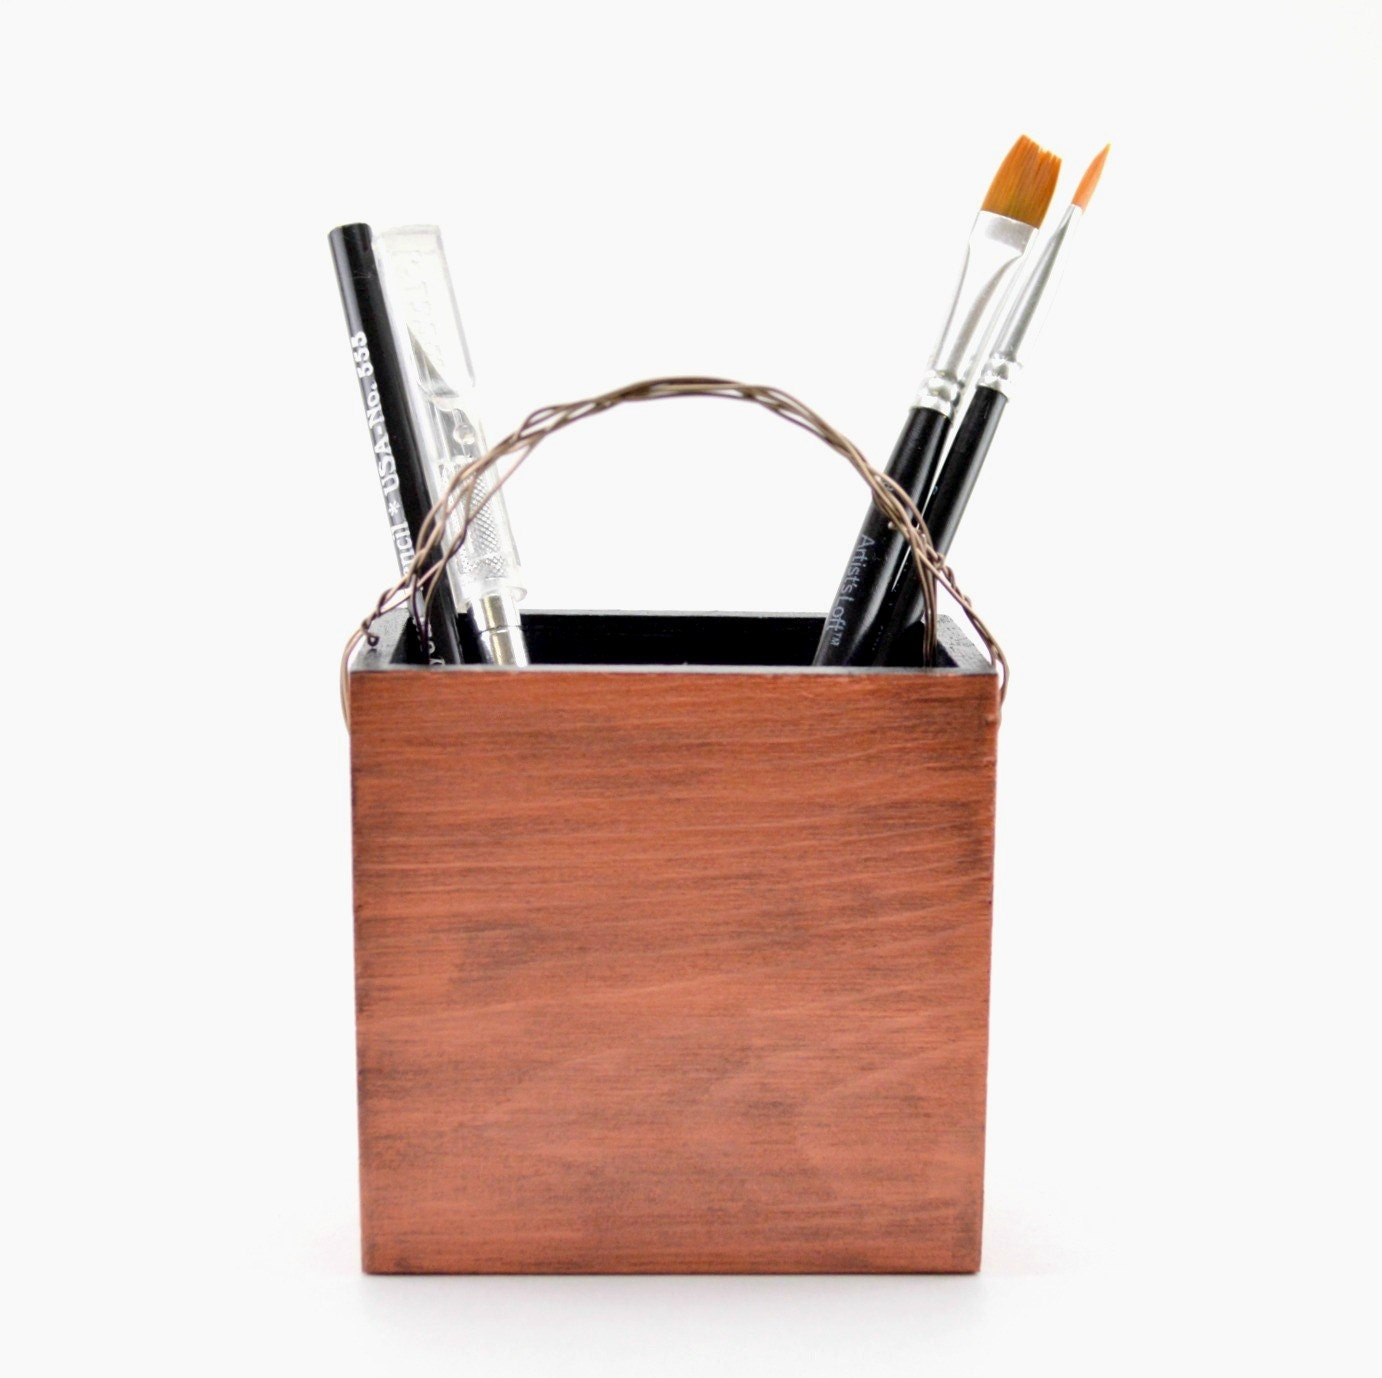 pen cup pencil holder desk accessory office accessory. Black Bedroom Furniture Sets. Home Design Ideas